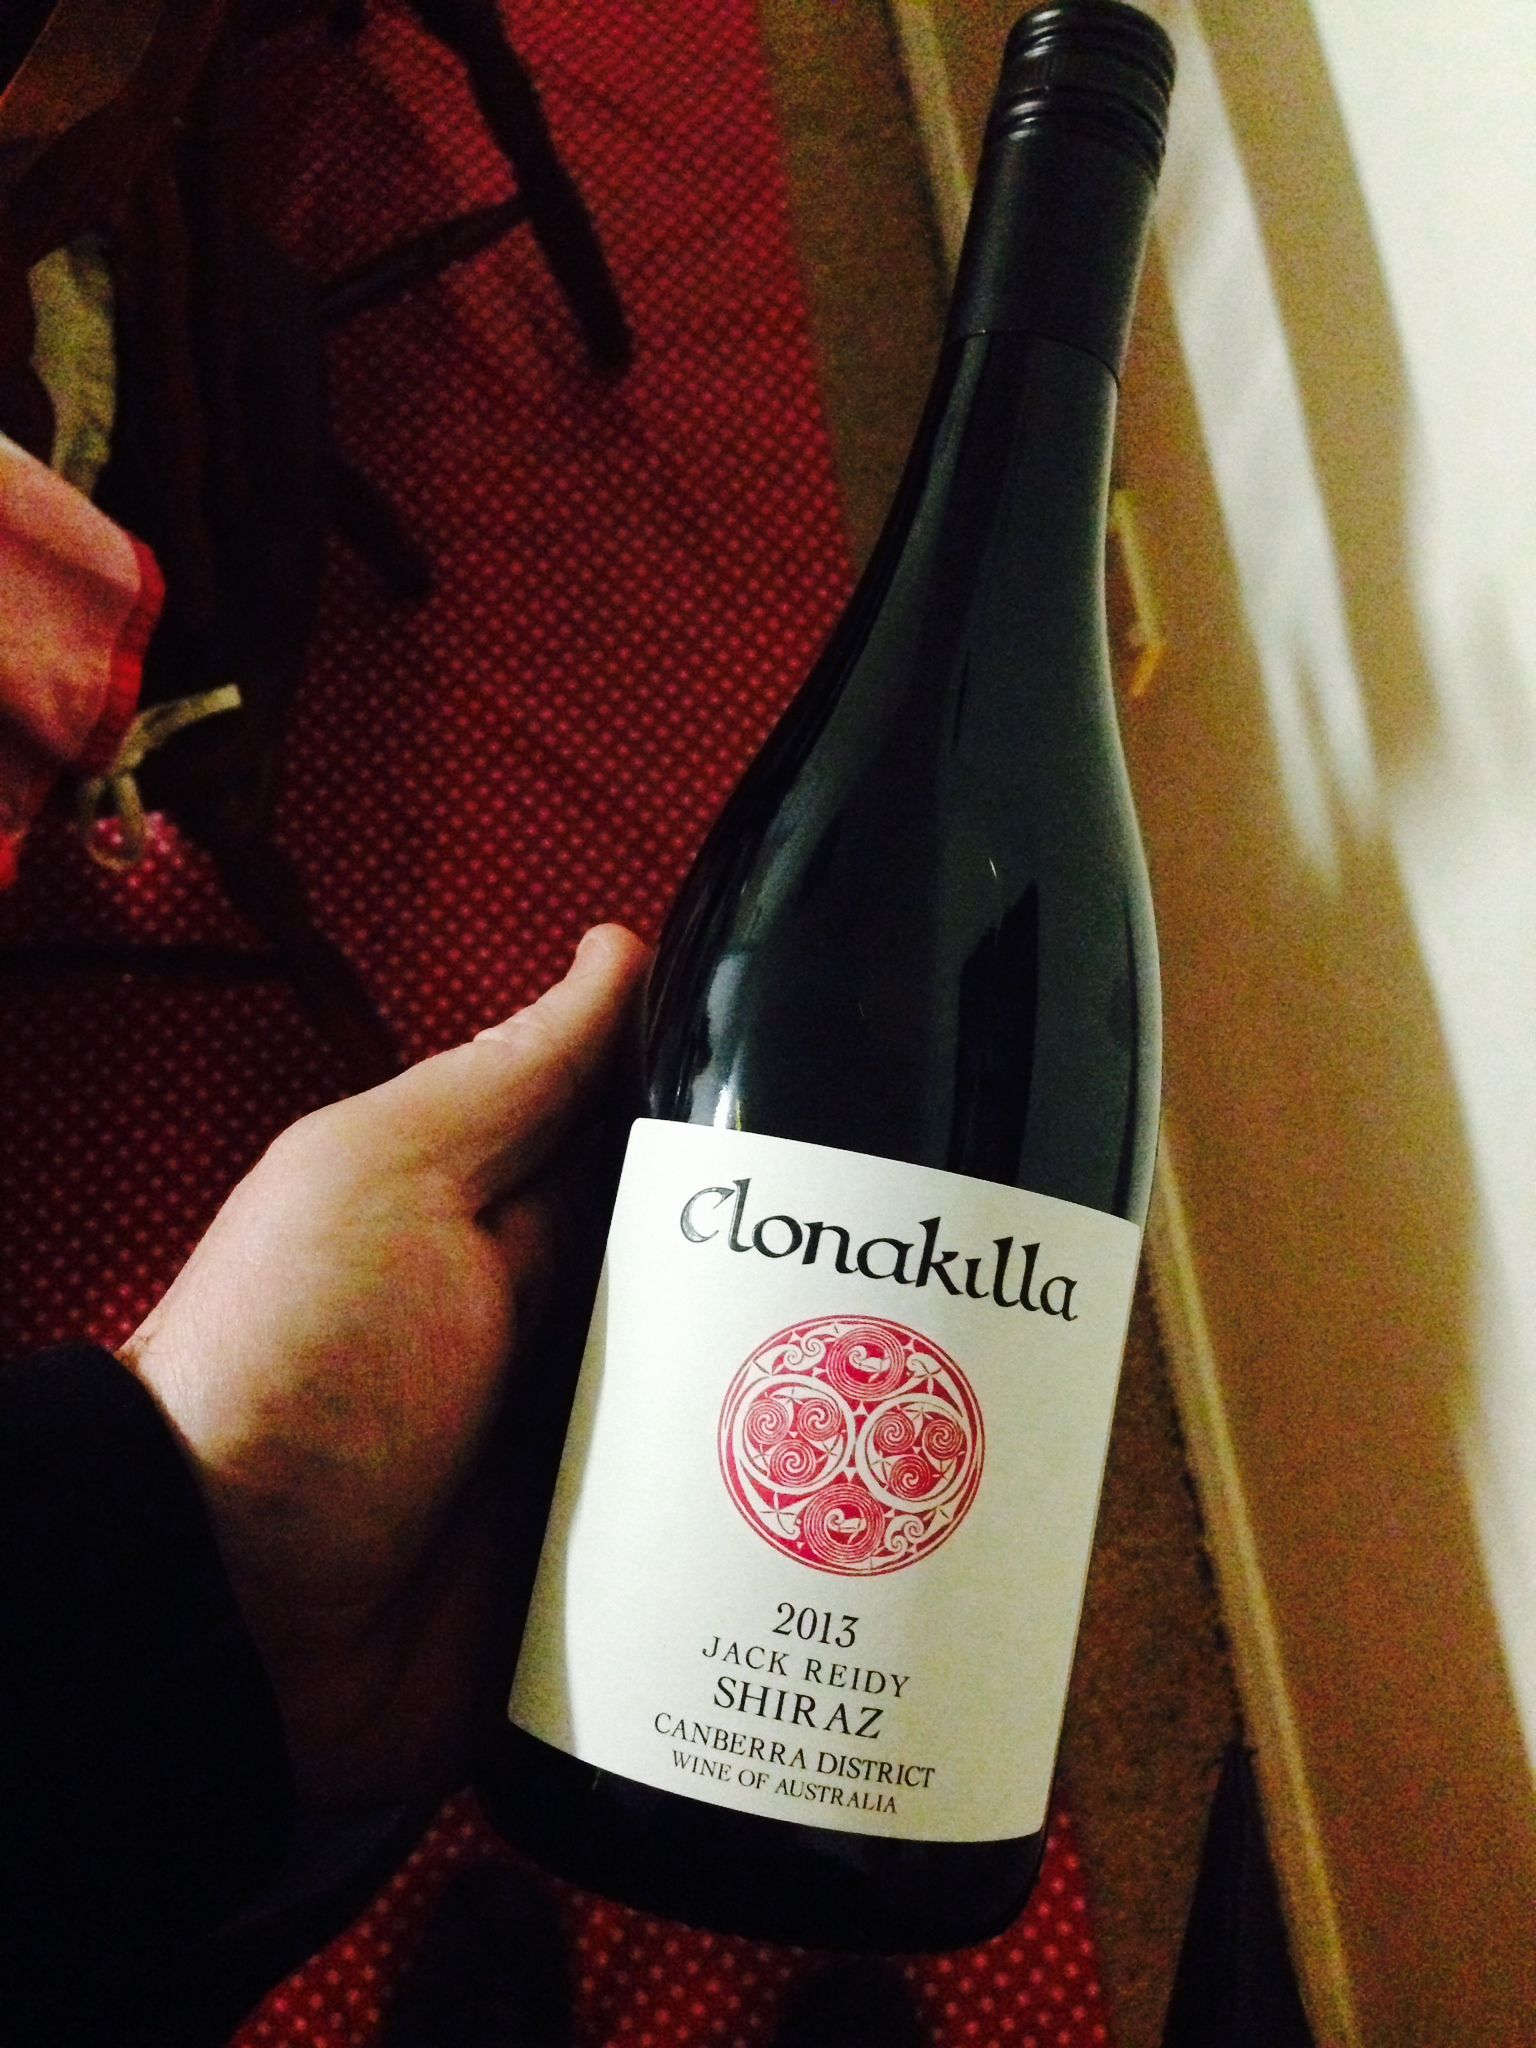 Clonakilla Is An Australian Winery Based In The Canberra Wine Region Of Murrumbateman New South Wales Producing Some Of The Best Shiraz In Australia